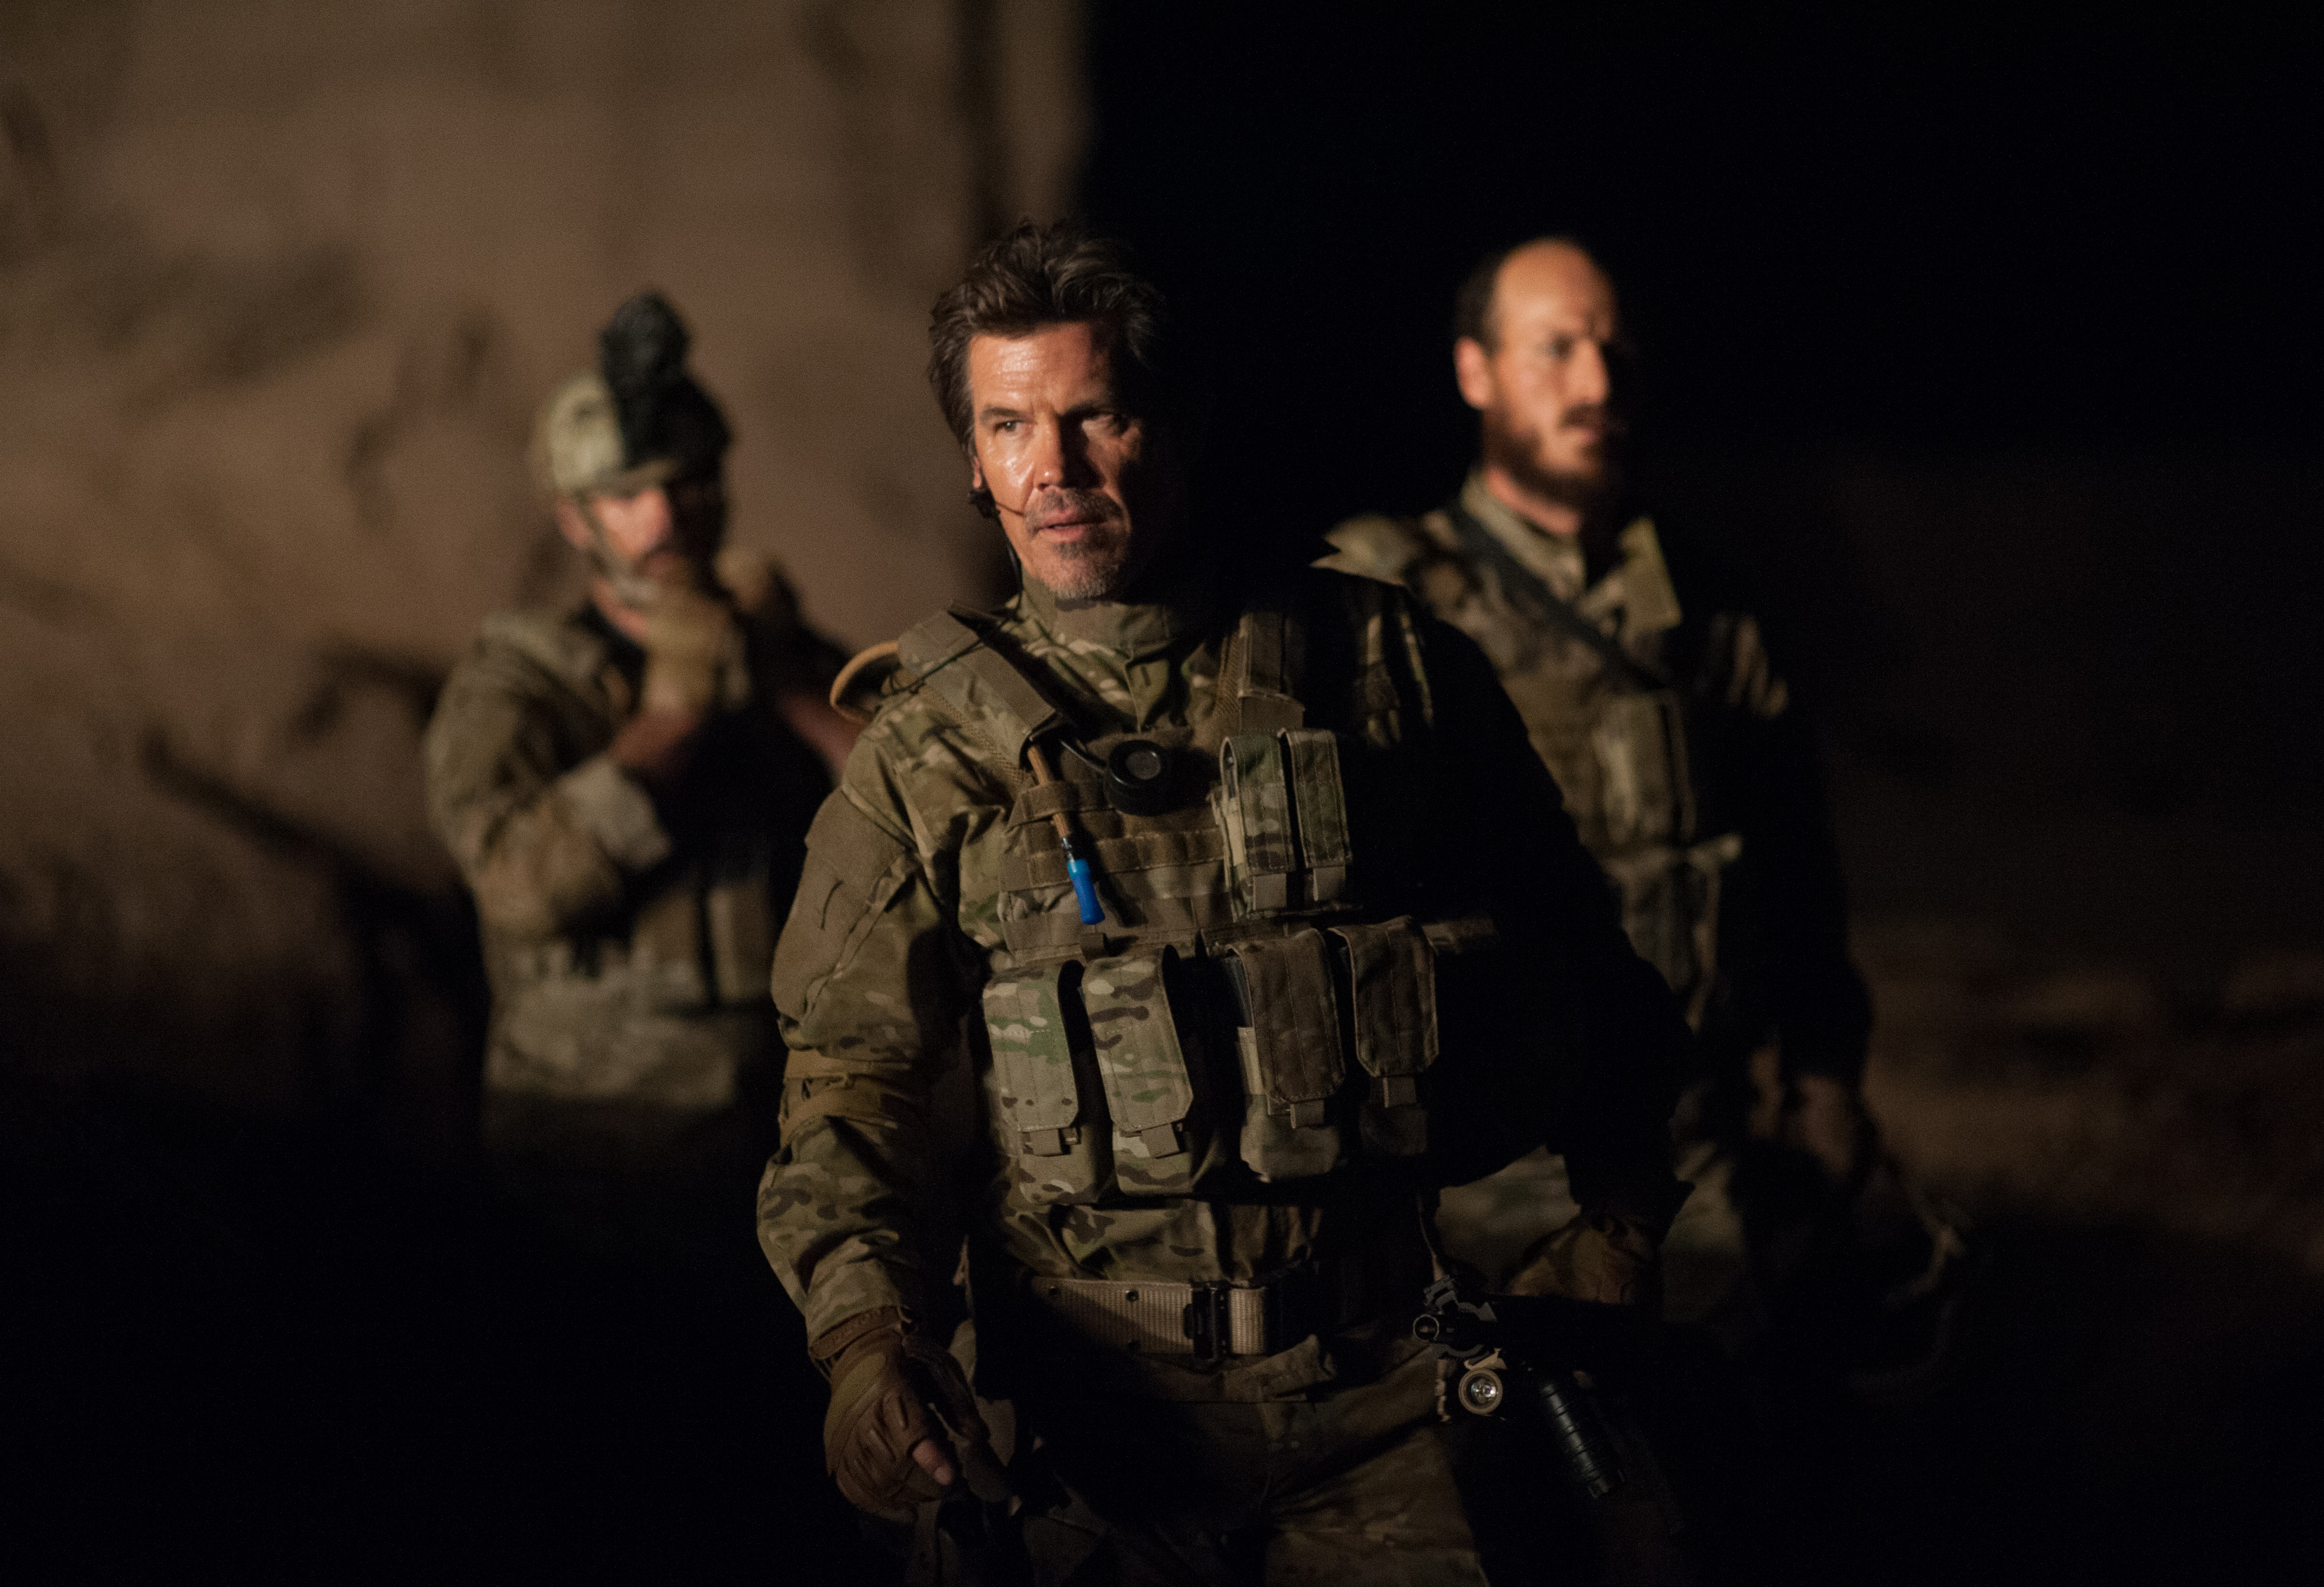 Josh Brolin in Sicario 2.